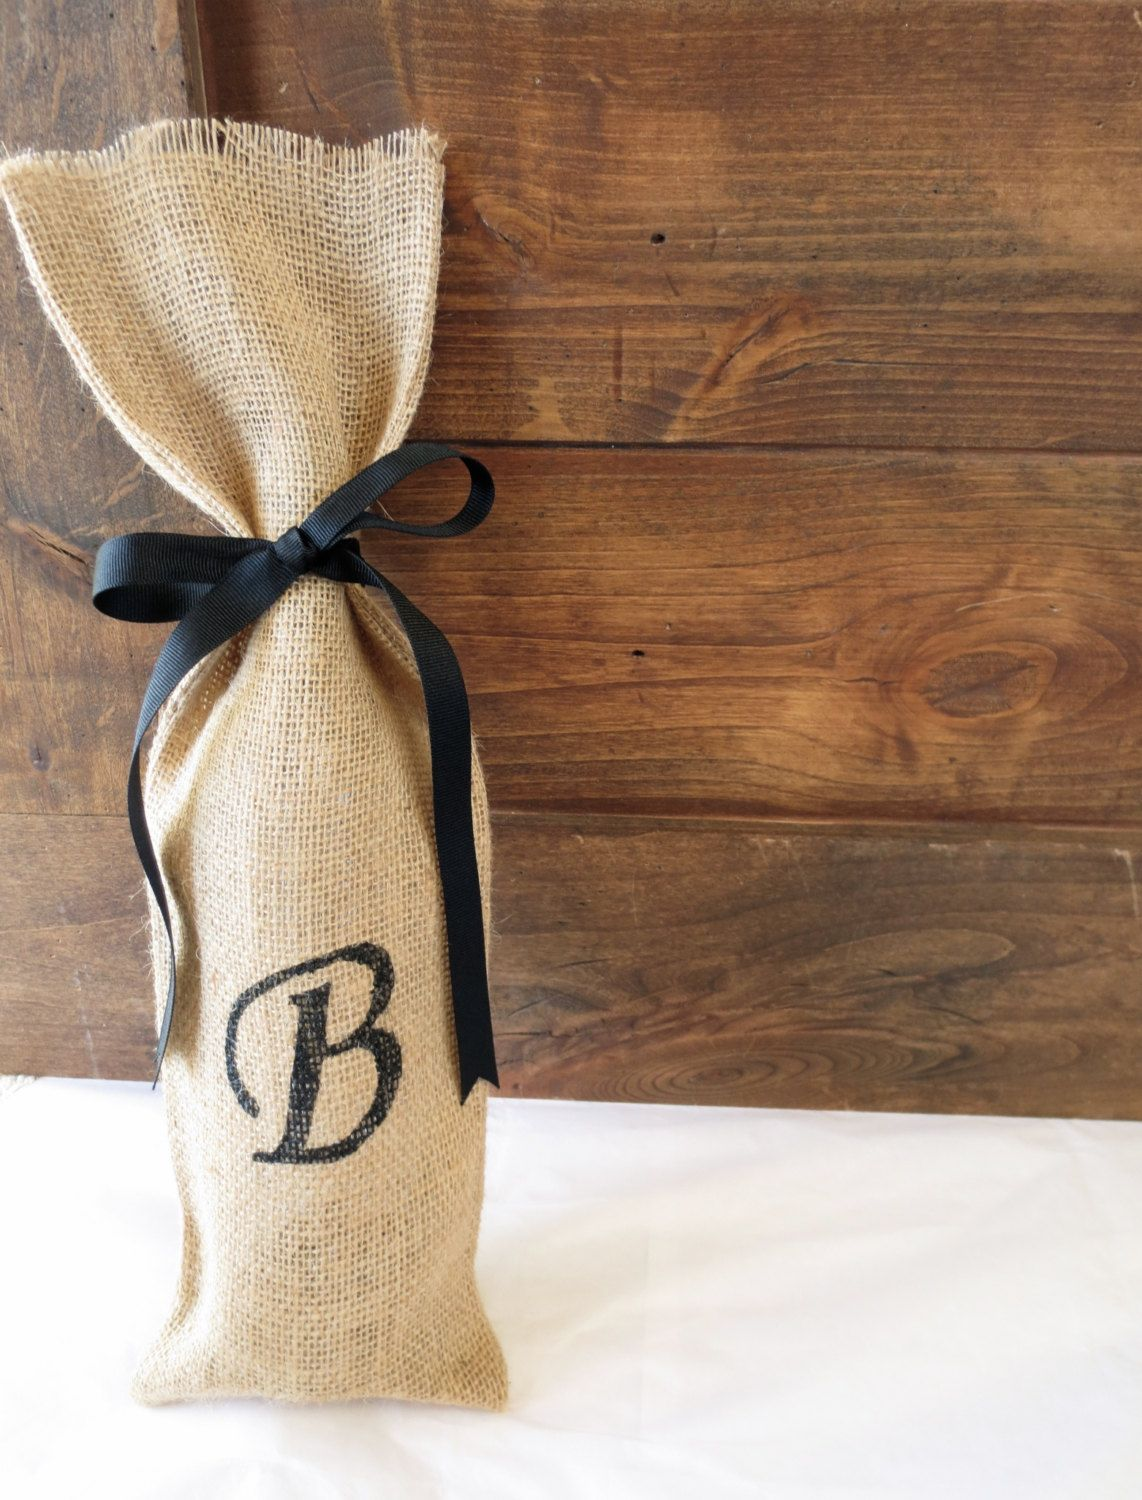 Ways to decorate gift bags - You Could Use This As A Way To Number The Tables Custom Monogram Burlap Gift Bag Personalized By Grippingglamour